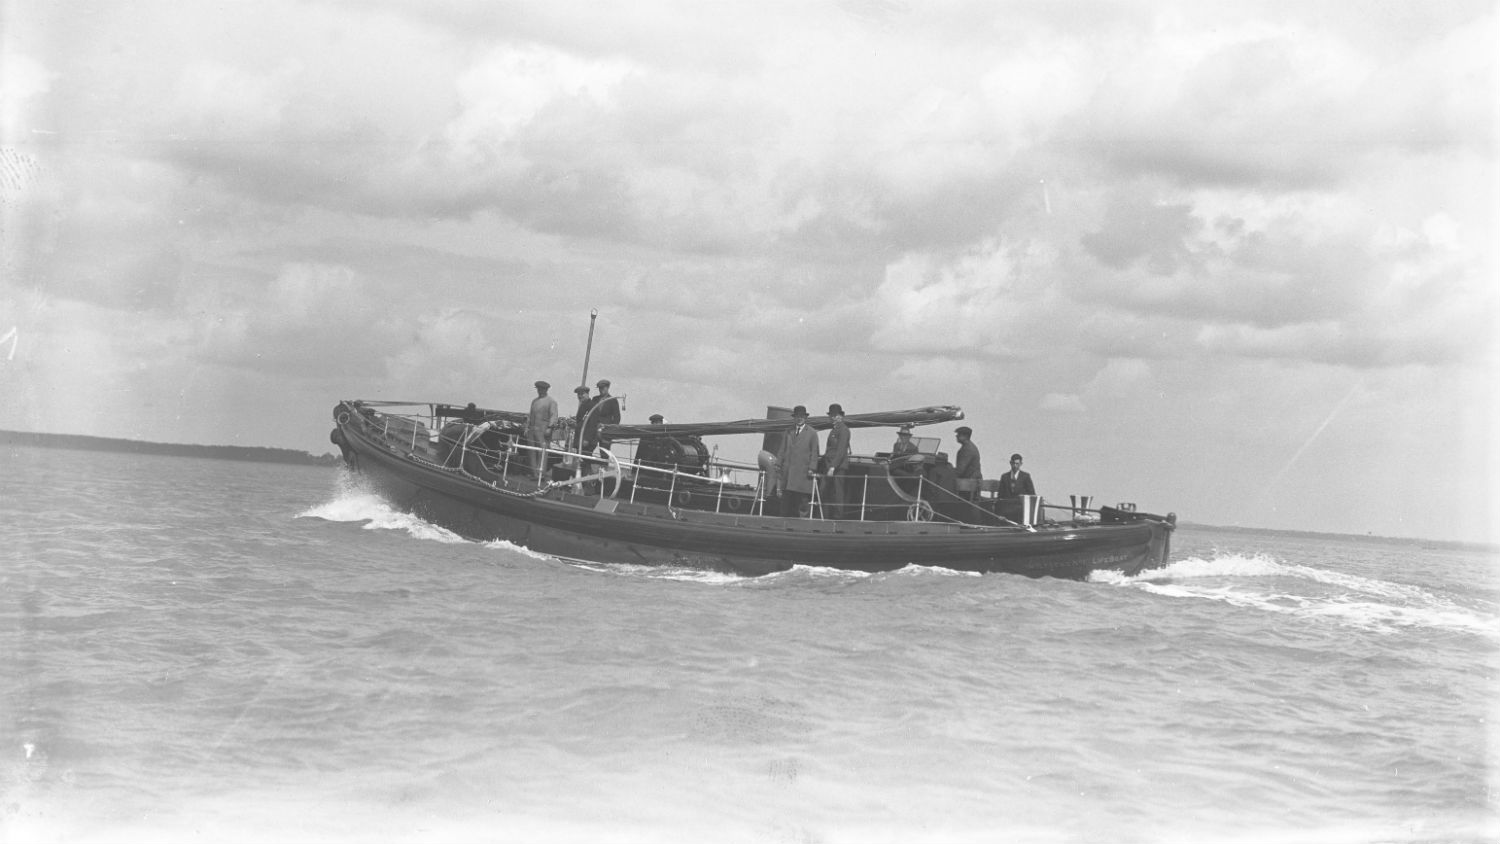 Black and white image of Holyhead lifeboat, A.E.D., while on trials